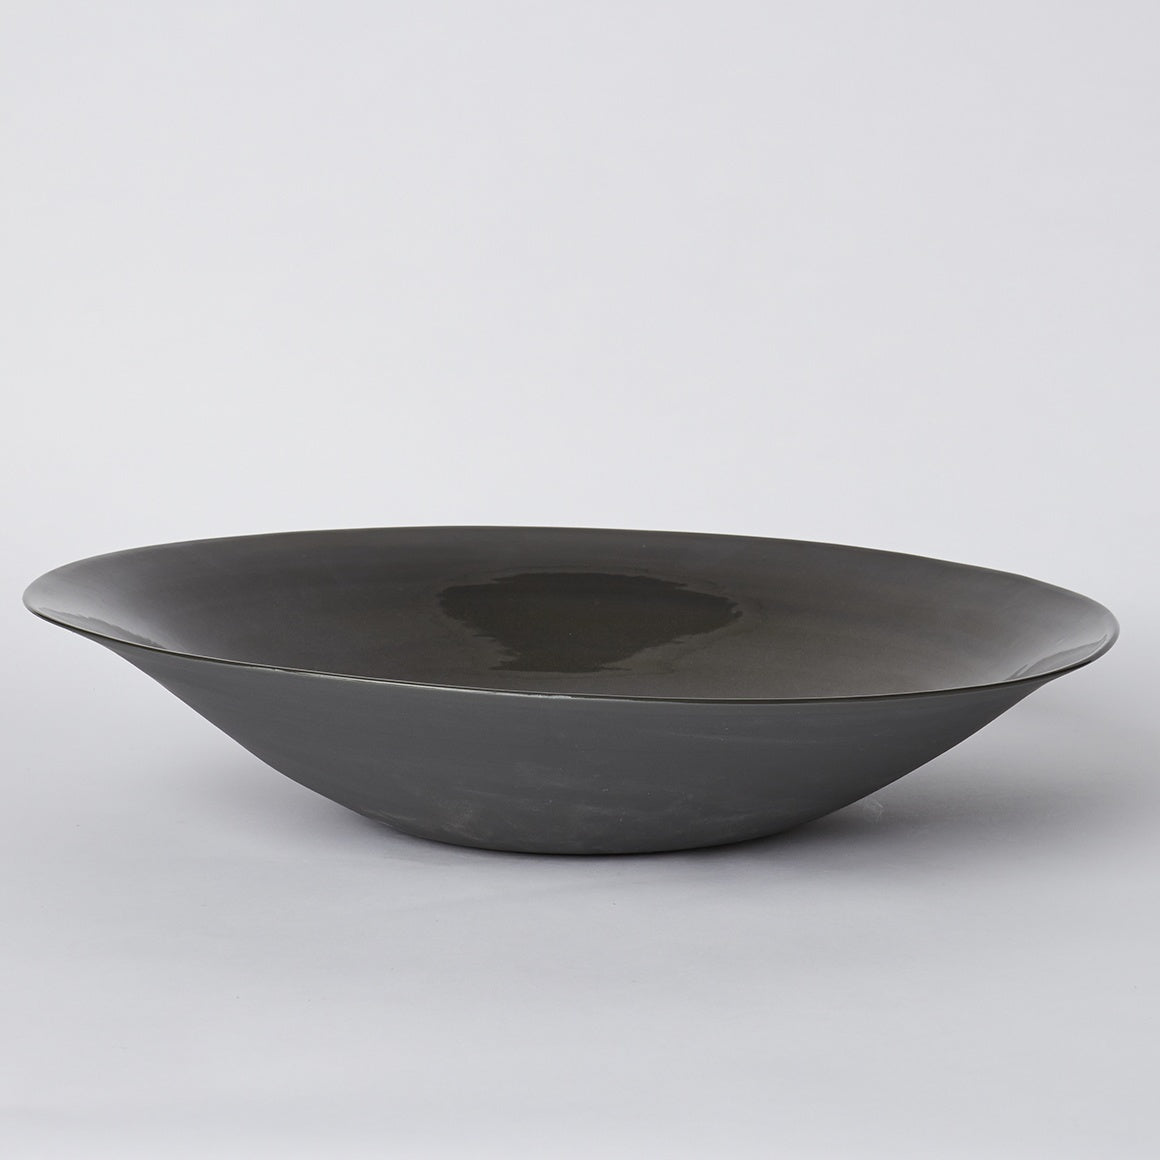 MUD AUSTRALIA-NEST BOWL - Eclectic Cool  - 8